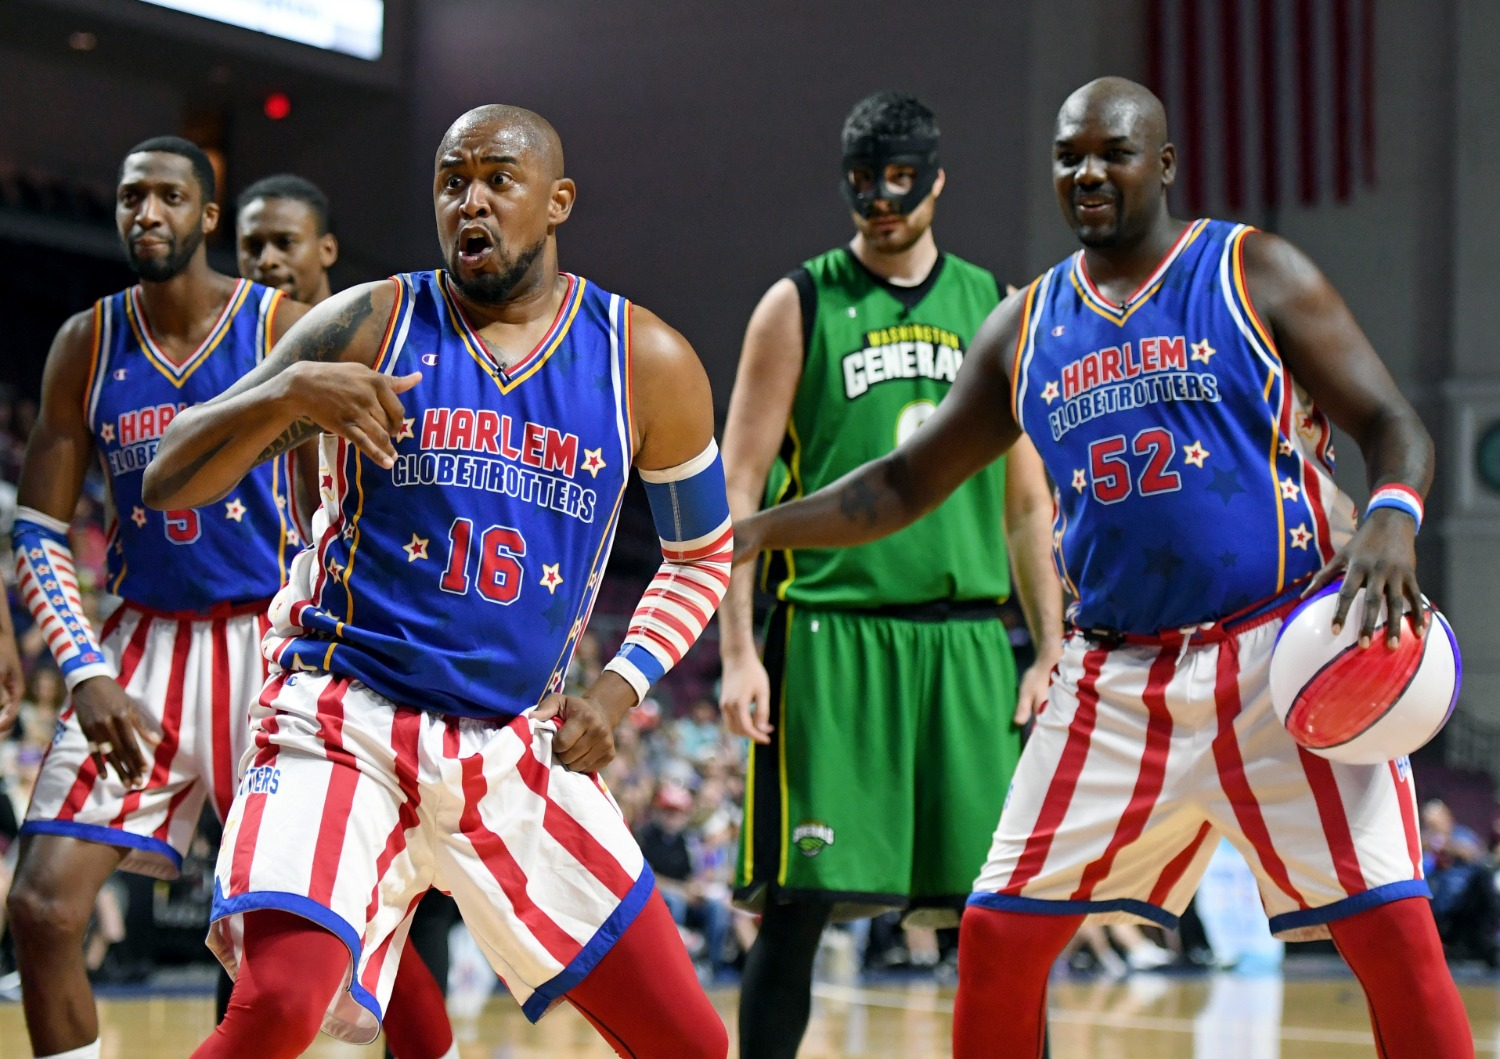 The Harlem Globetrotters could be the solution to the Redskins name change dilemma.